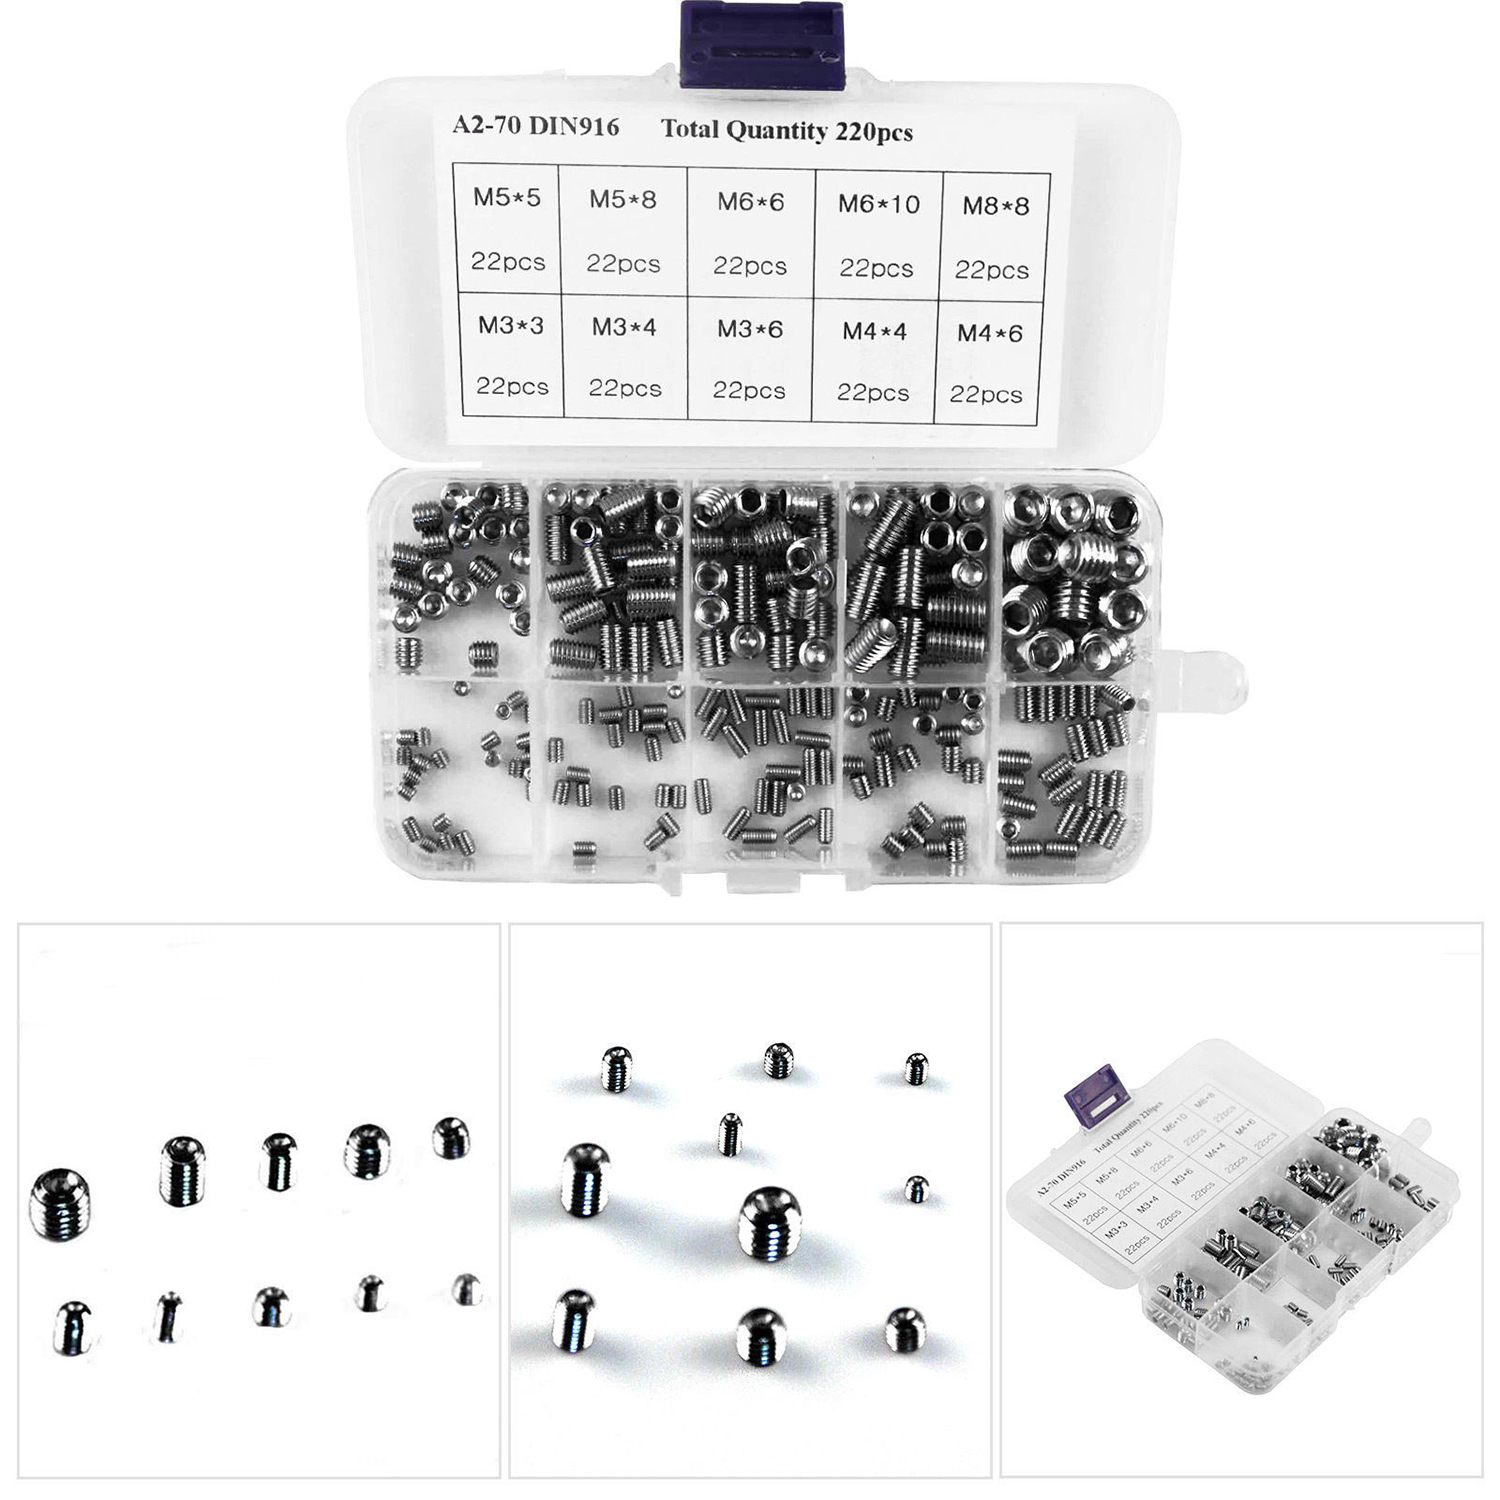 220PCS/Lot M3/M4/M6/M8 Head Socket Hex Grub Screw Assortment Cup Point Set Stainless Steel 3mm/4mm/5mm/6mm/8mm/10mm 10 Sizes 220pcs lot m3 m4 m6 m8 head socket hex grub screw assortment cup point set stainless steel 3mm 4mm 5mm 6mm 8mm 10mm 10 sizes